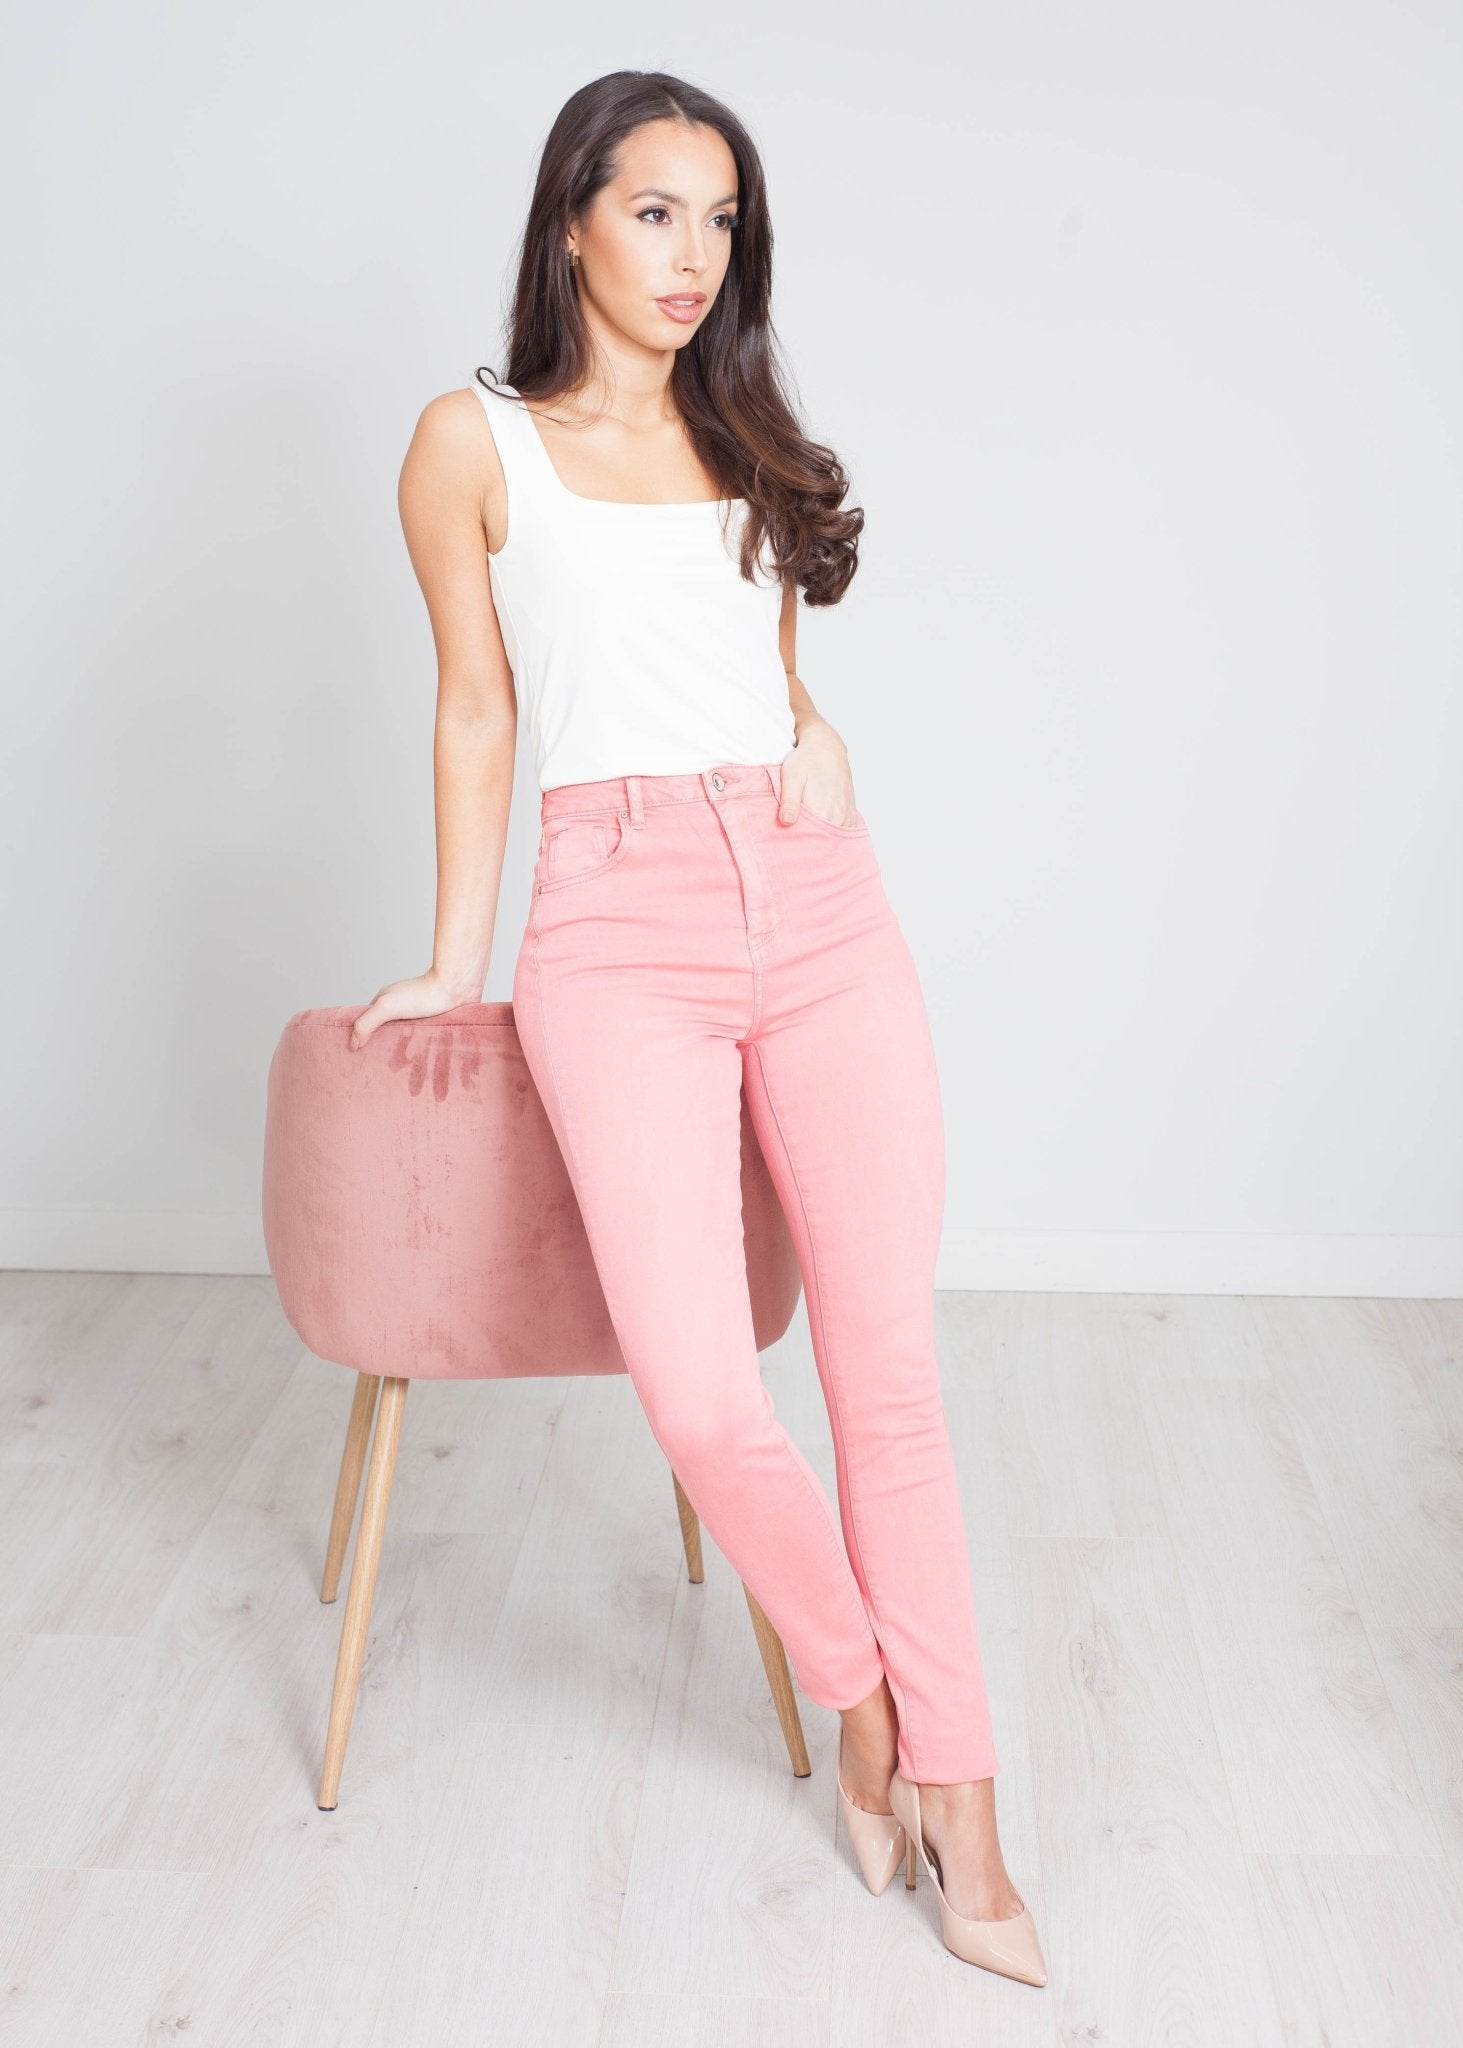 Lyla High Waist Skinny Jean In Coral - The Walk in Wardrobe